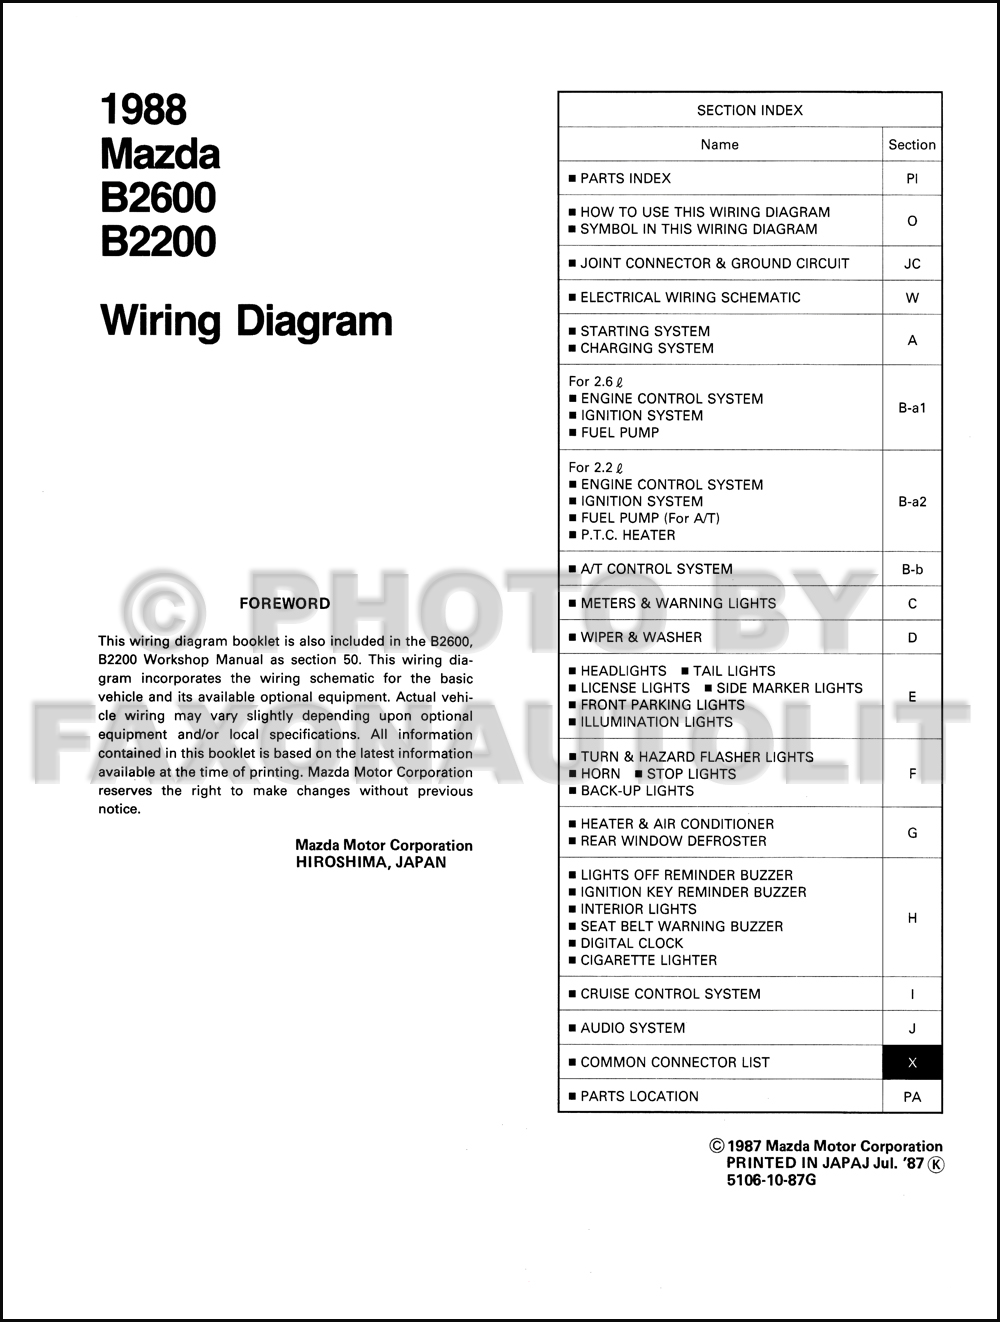 1988 Mazda B2600 Wiring Diagram Layout Wiring Diagrams \u2022 98 Mazda 626  Headlight Replacement Mazda 2000 626 Wiring Headlight